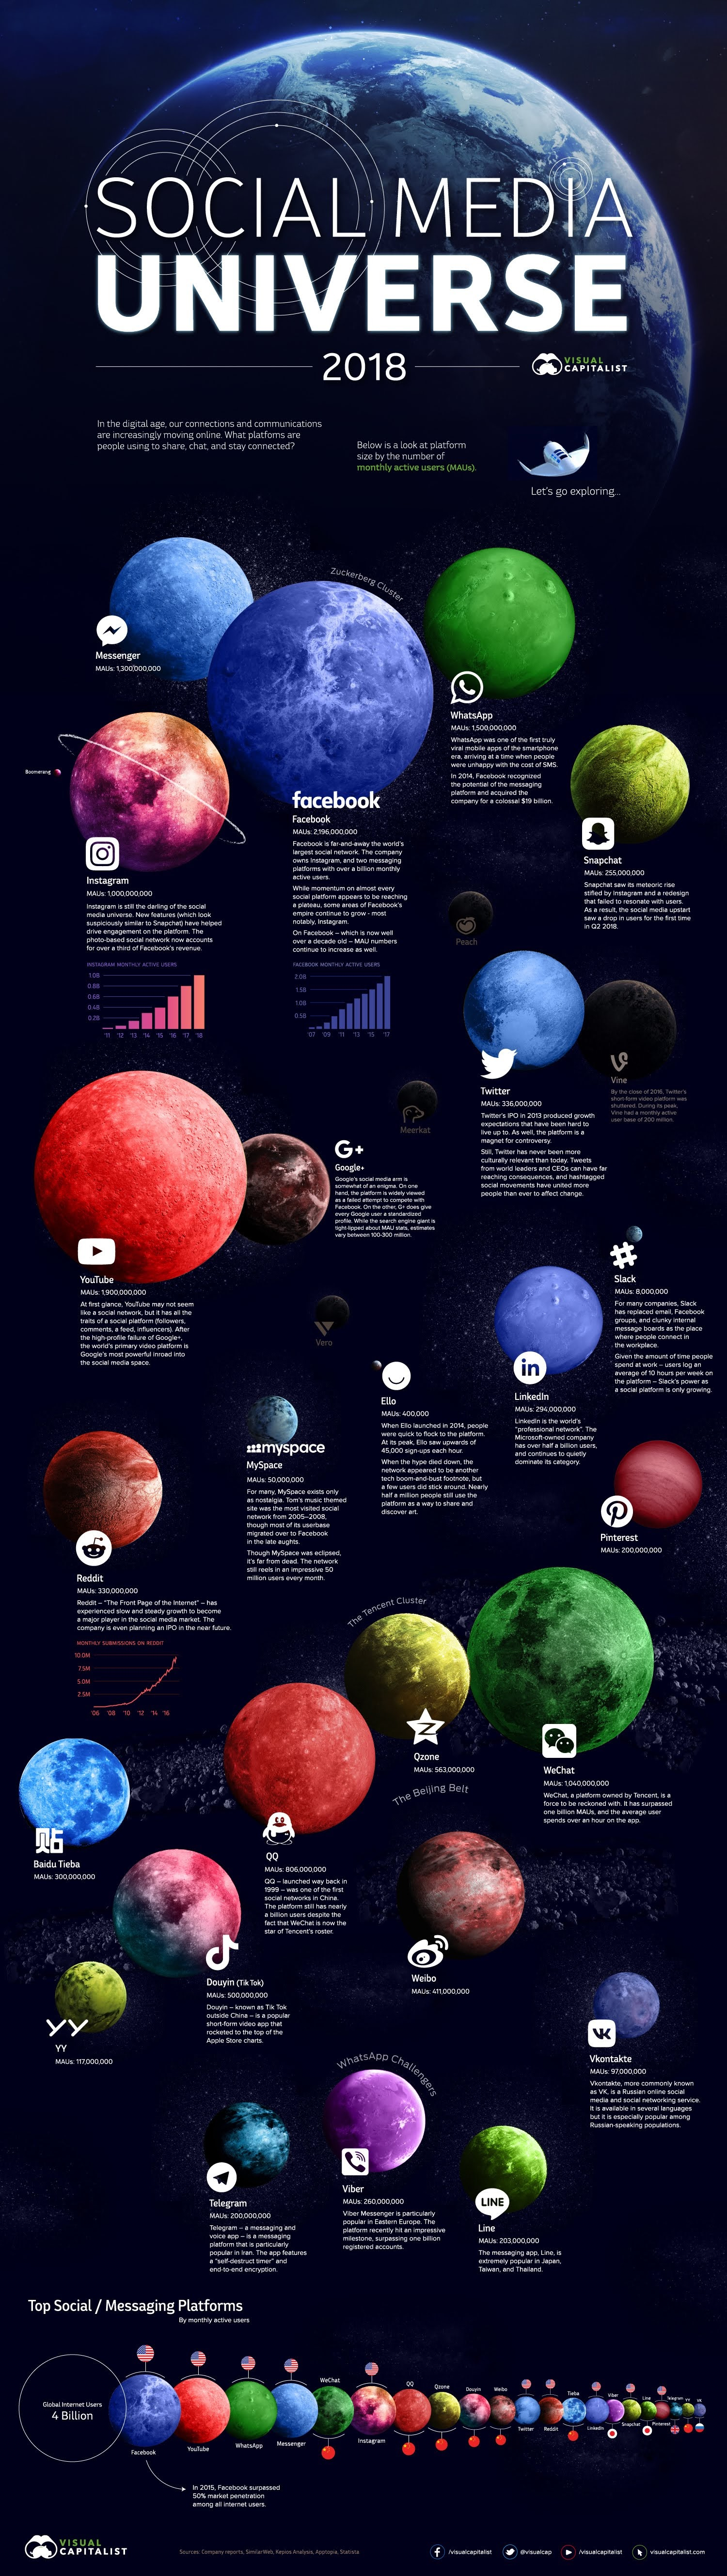 Social Media Universe in 2018 #infographic